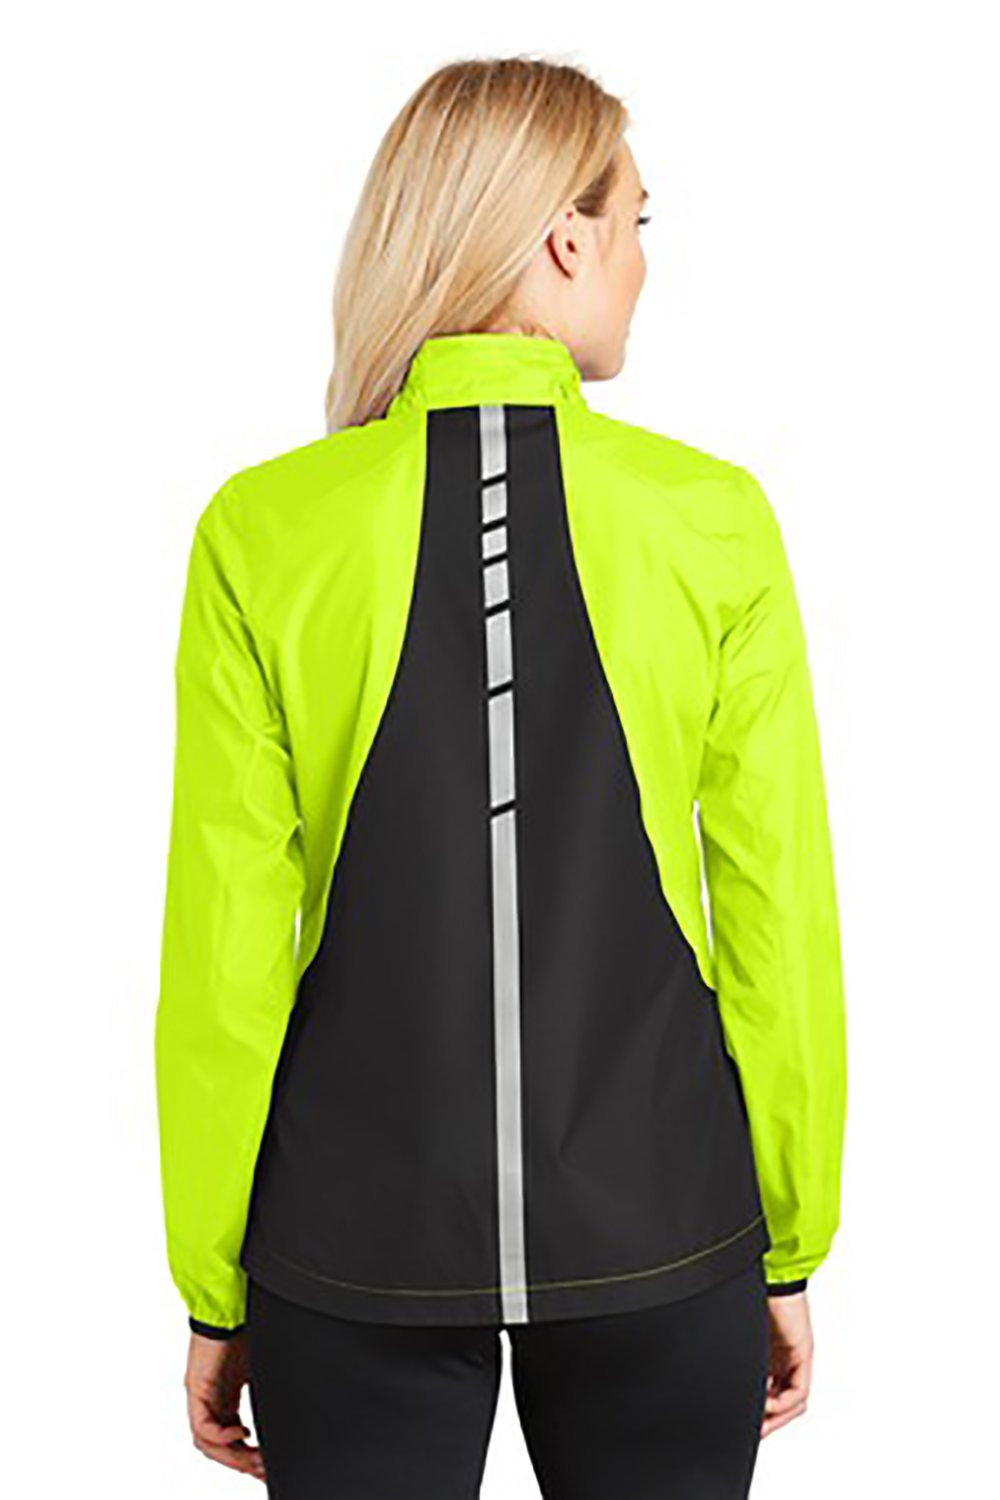 AACR Philadelphia Marathon: 'Emb. Marathon' Women's Reflective Lightweight Full Zip Jacket - Safety Yellow / Deep Black - by Port Authority